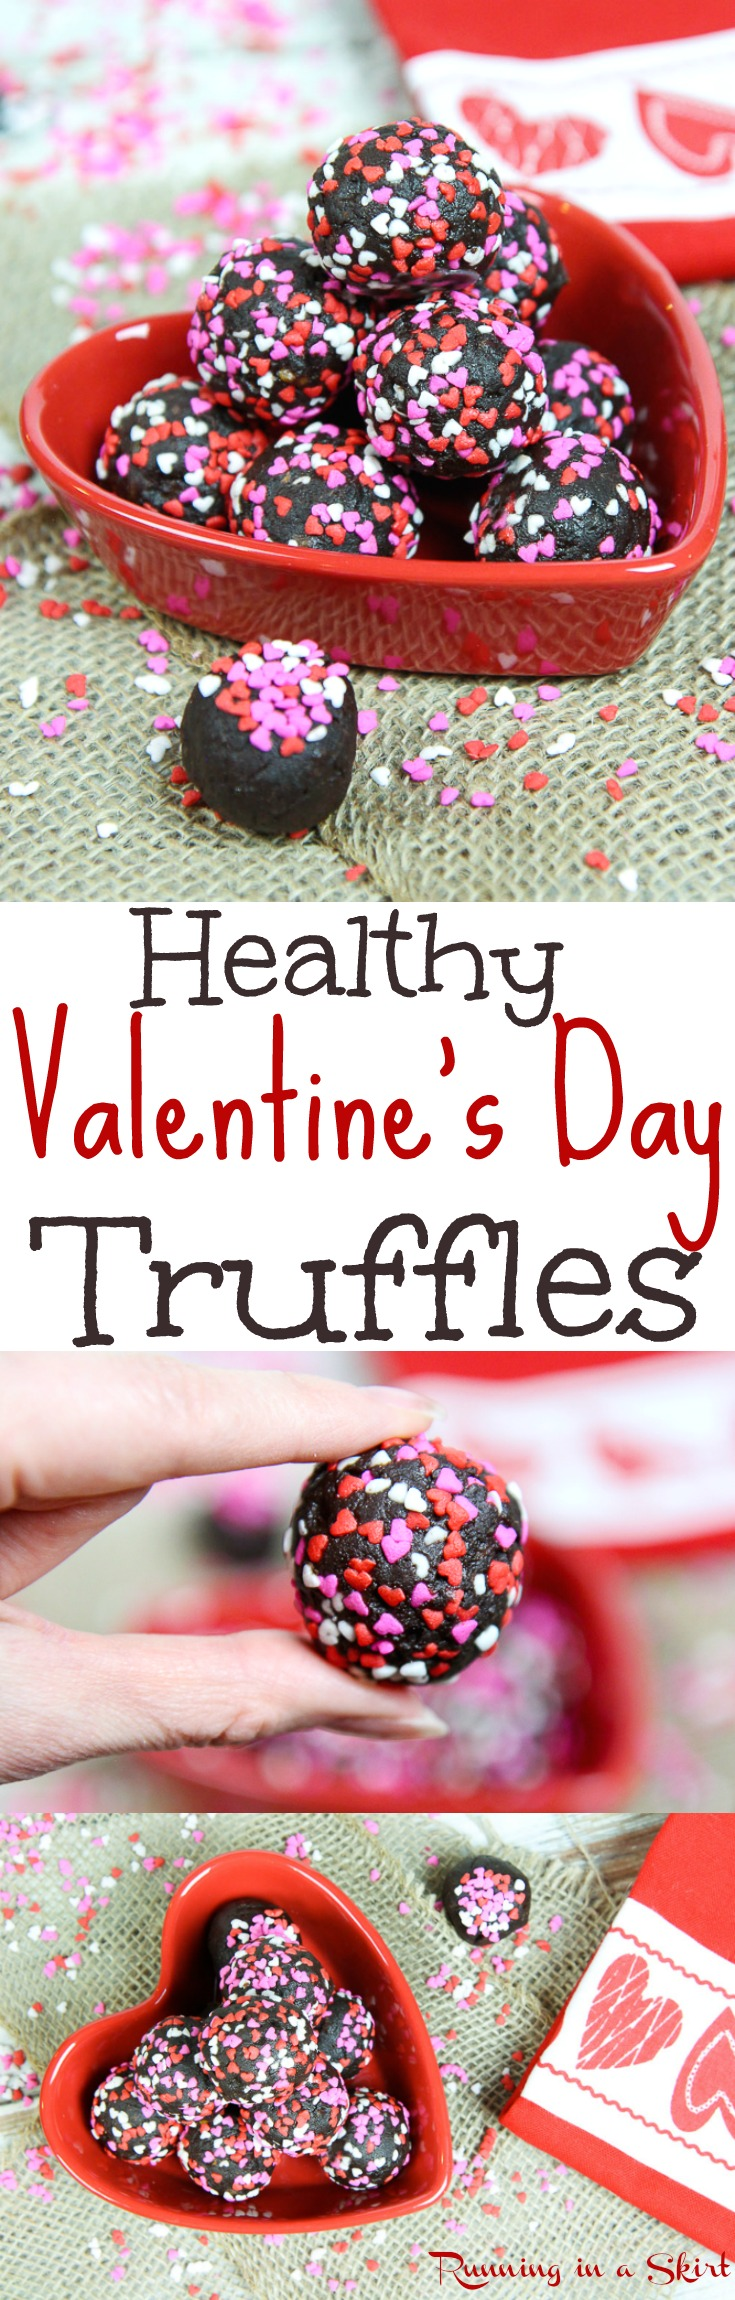 Clean Eating Healthy Chocolate & Date Truffles recipe for Valentine's Day.  Only 4 Ingredients.  The perfect easy, raw vegan energy bites dessert recipes!  This dairy free treat is delicious and features almond butter or your favorite nut butter.  / Running in a Skirt via @juliewunder